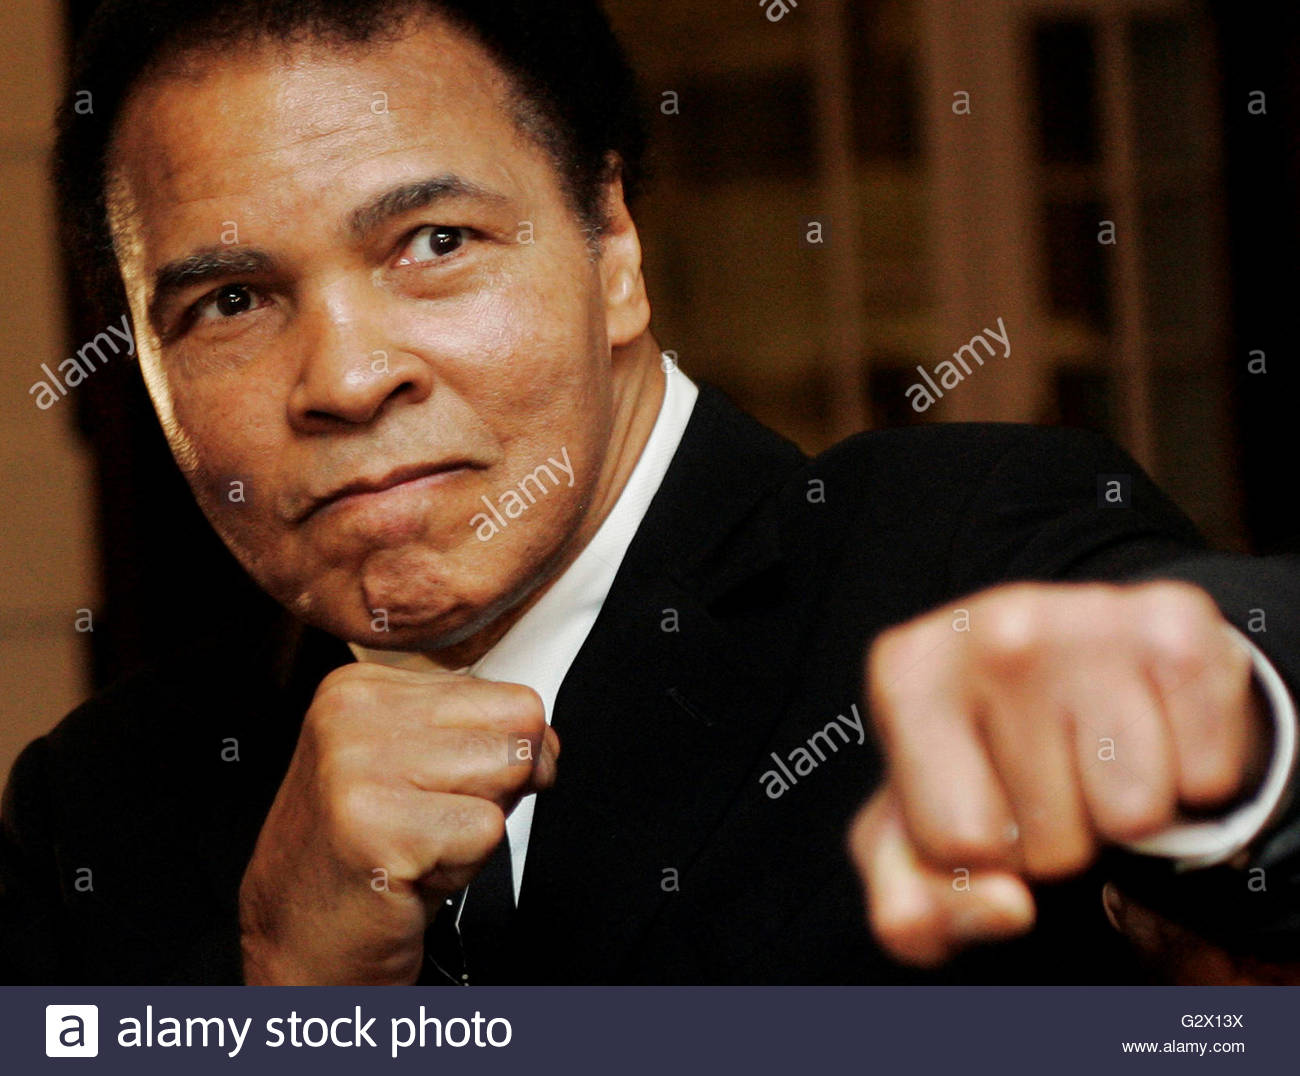 U.S. boxing great Muhammad Ali poses during the Crystal Award ceremony at the World Economic Forum (WEF) in Davos, - Stock Photo